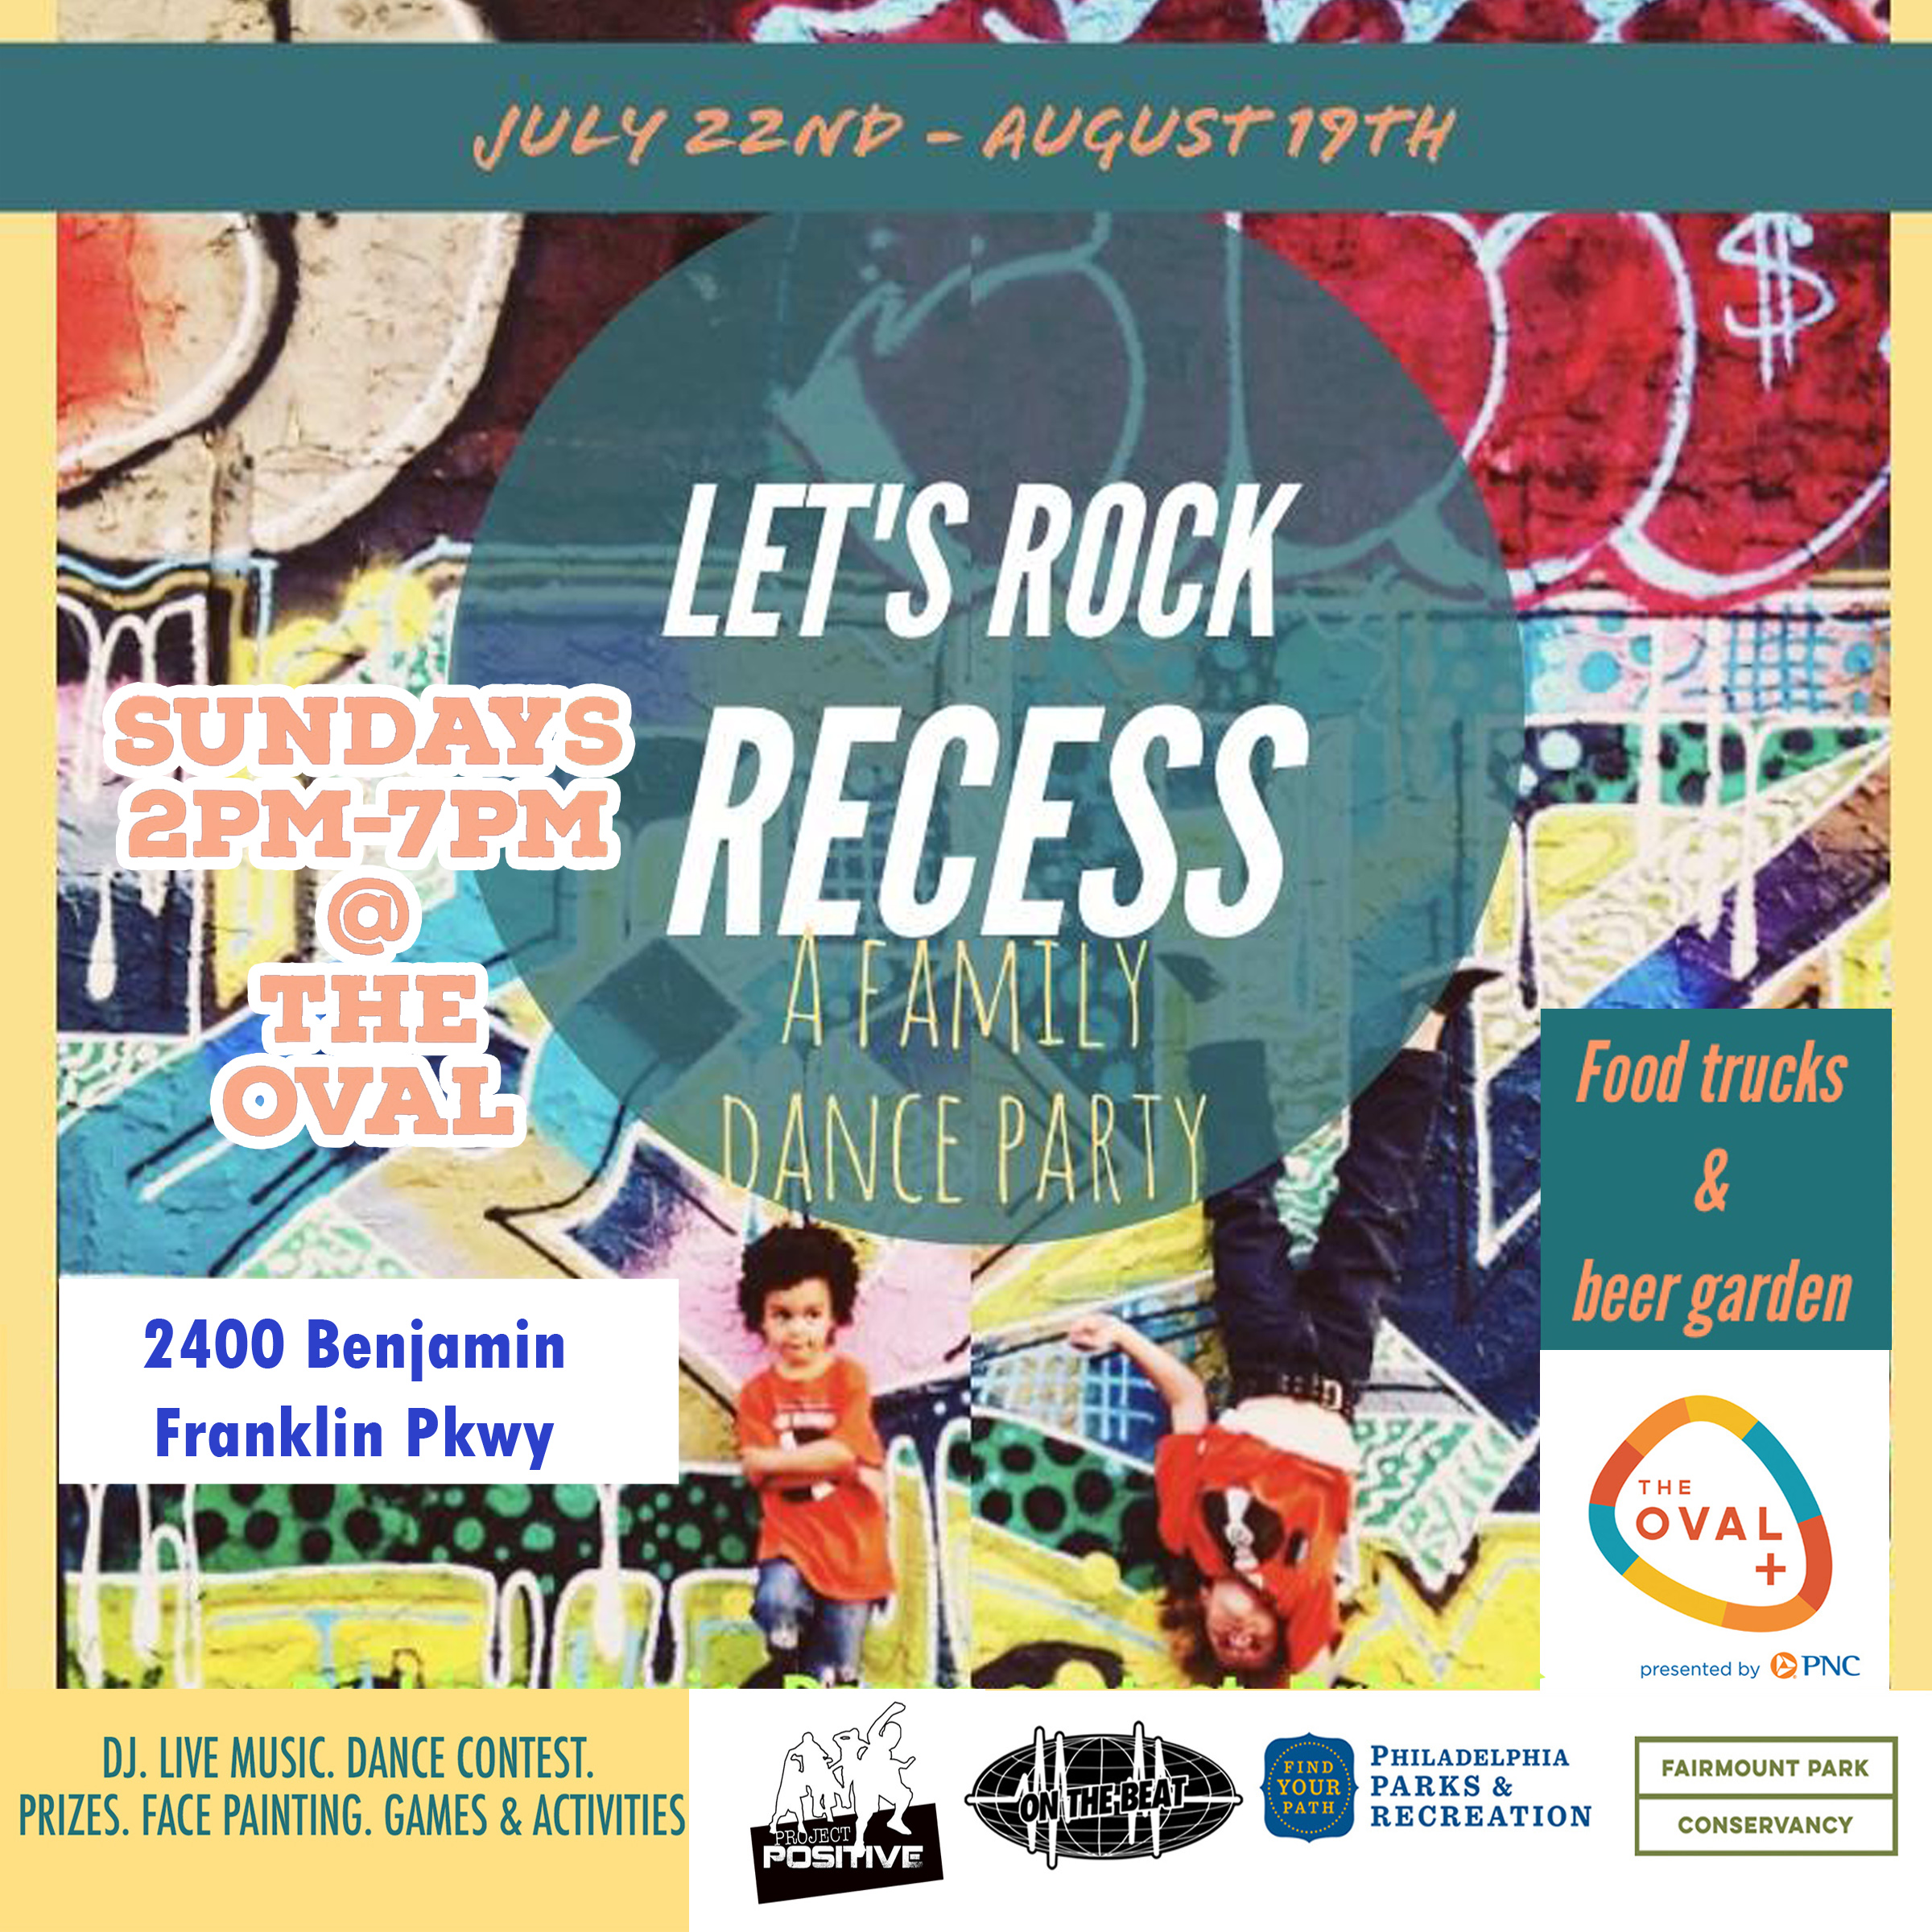 Let's Rock Recess!!!